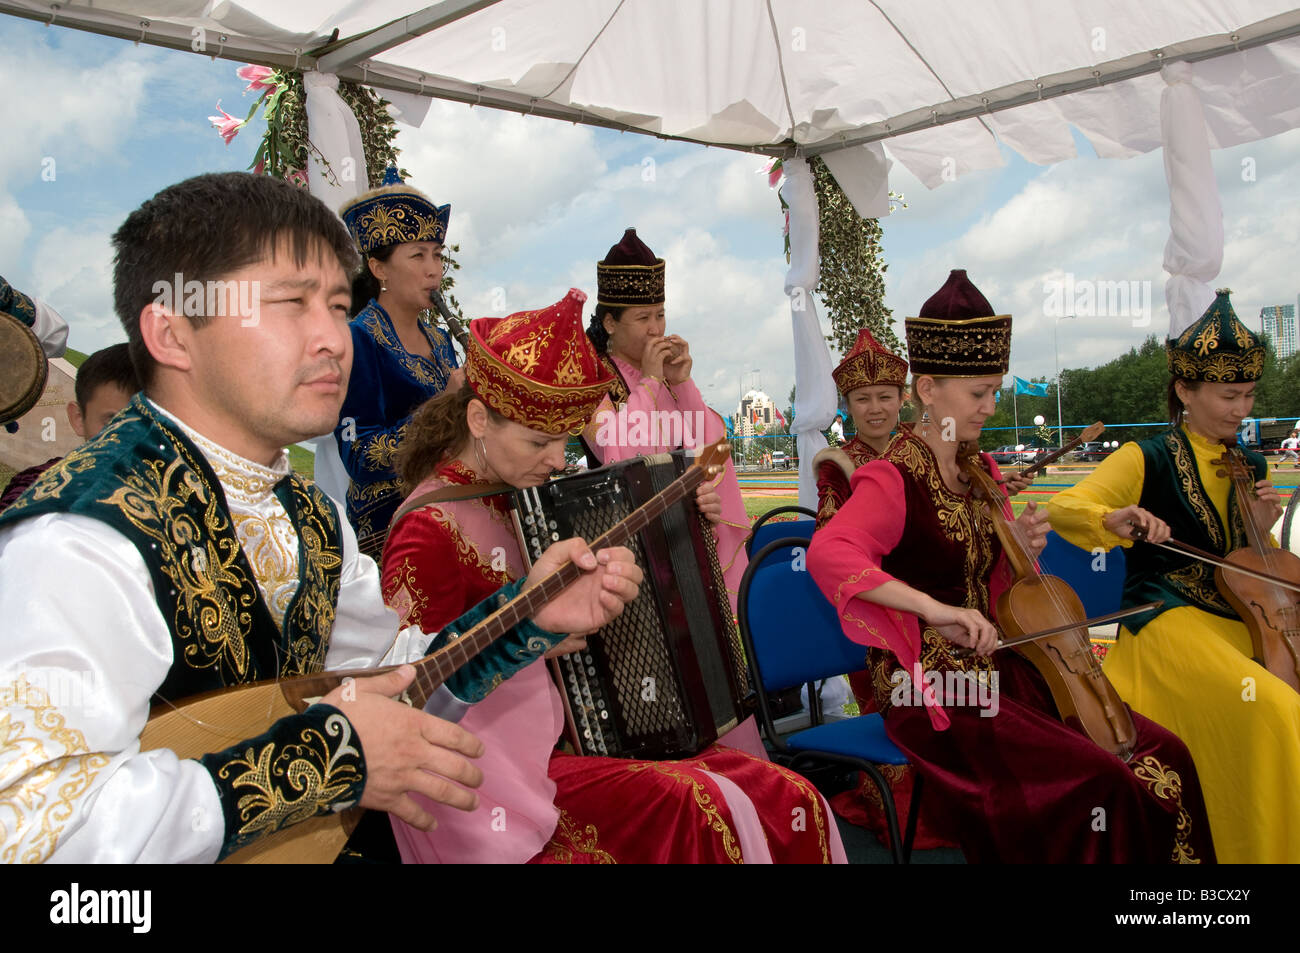 Band music in traditional clothes. Kazakhstan - Stock Image